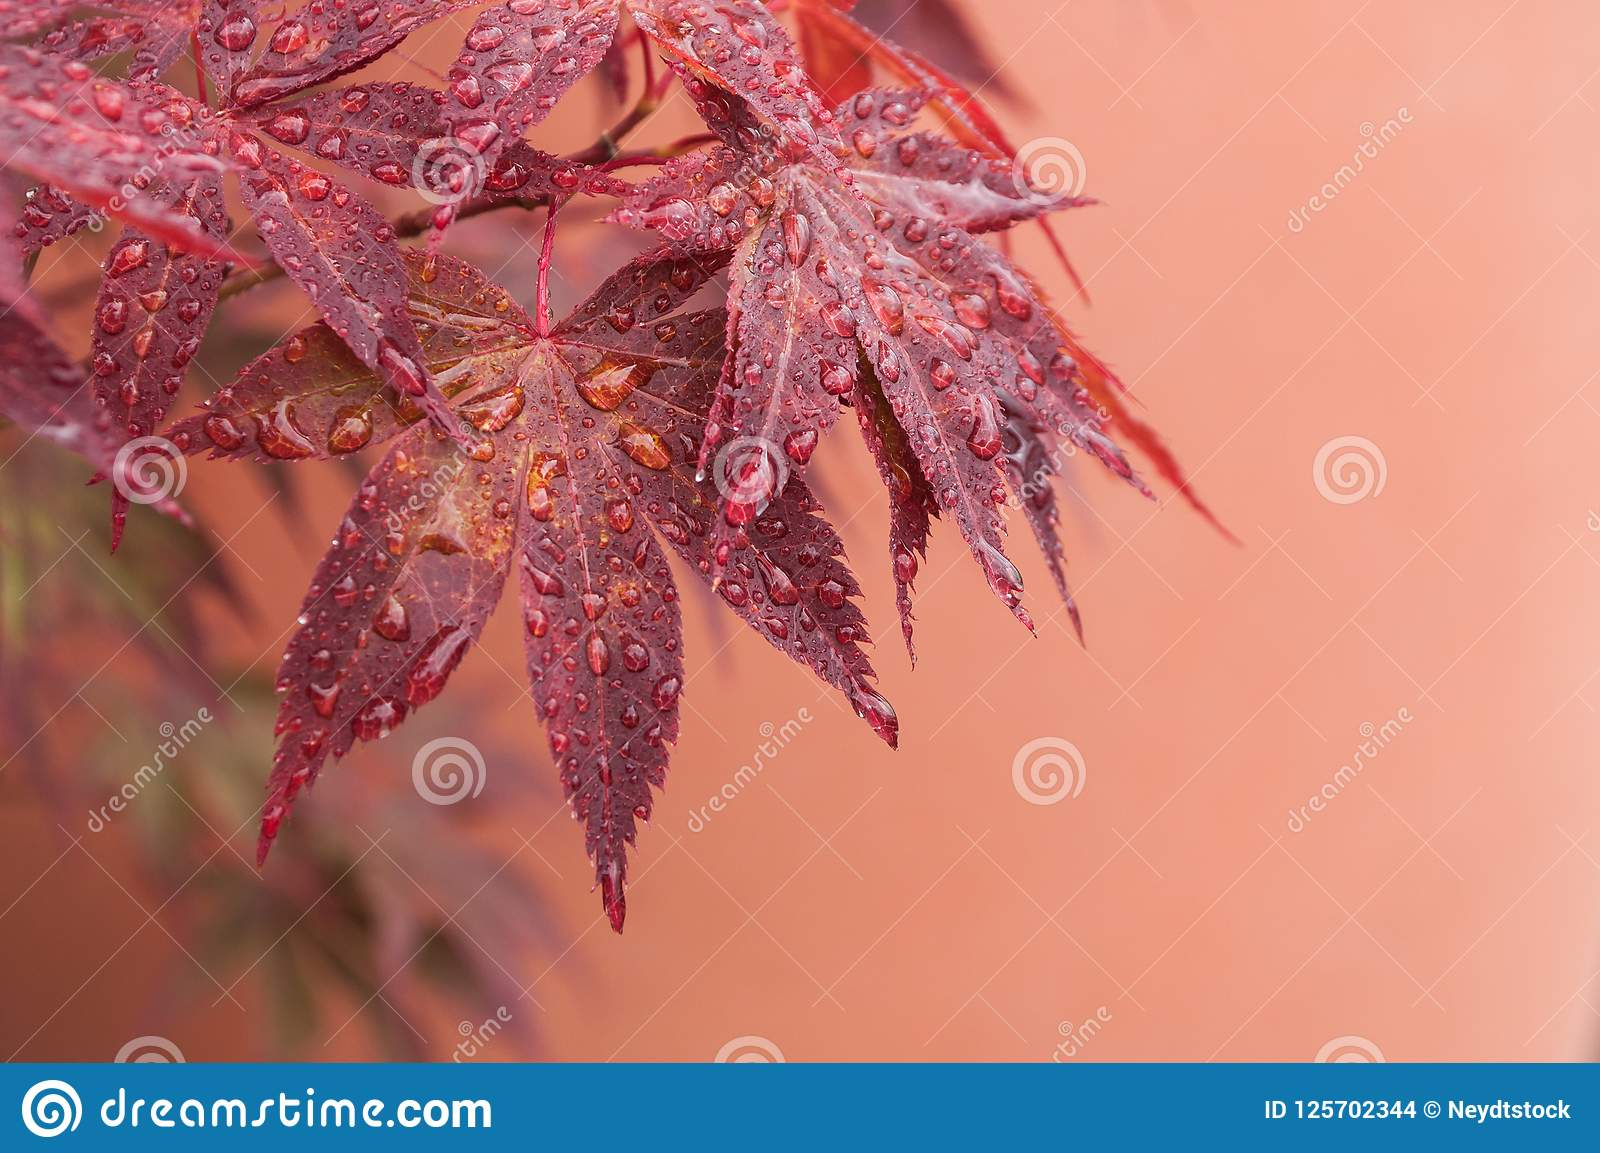 rain drops on red japanese maple leaves in a japanese